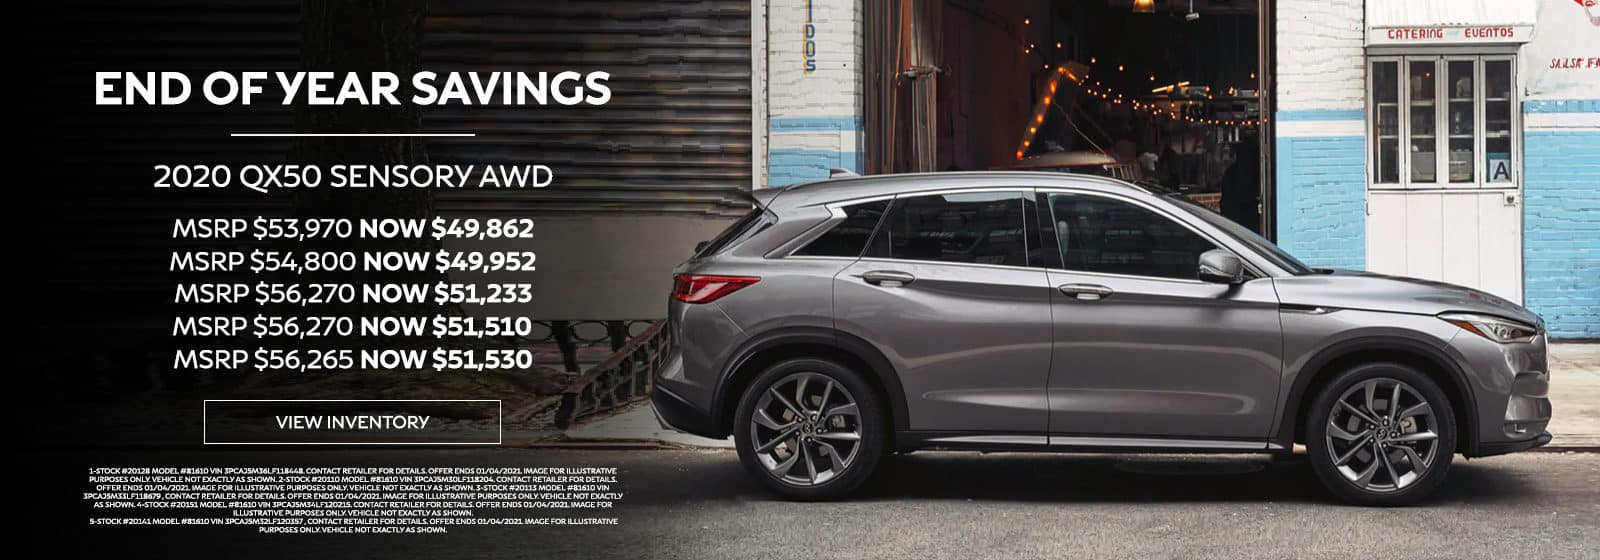 END OF YEAR SAVINGS 2020 QX50 SENSORY AWD MSRP $53,970 NOW $49,862 MSRP $54,800 NOW $49,952 MSRP $56,270 NOW $51,233 MSRP $56,270 NOW $51,510 MSRP $56,265 NOW $51,530